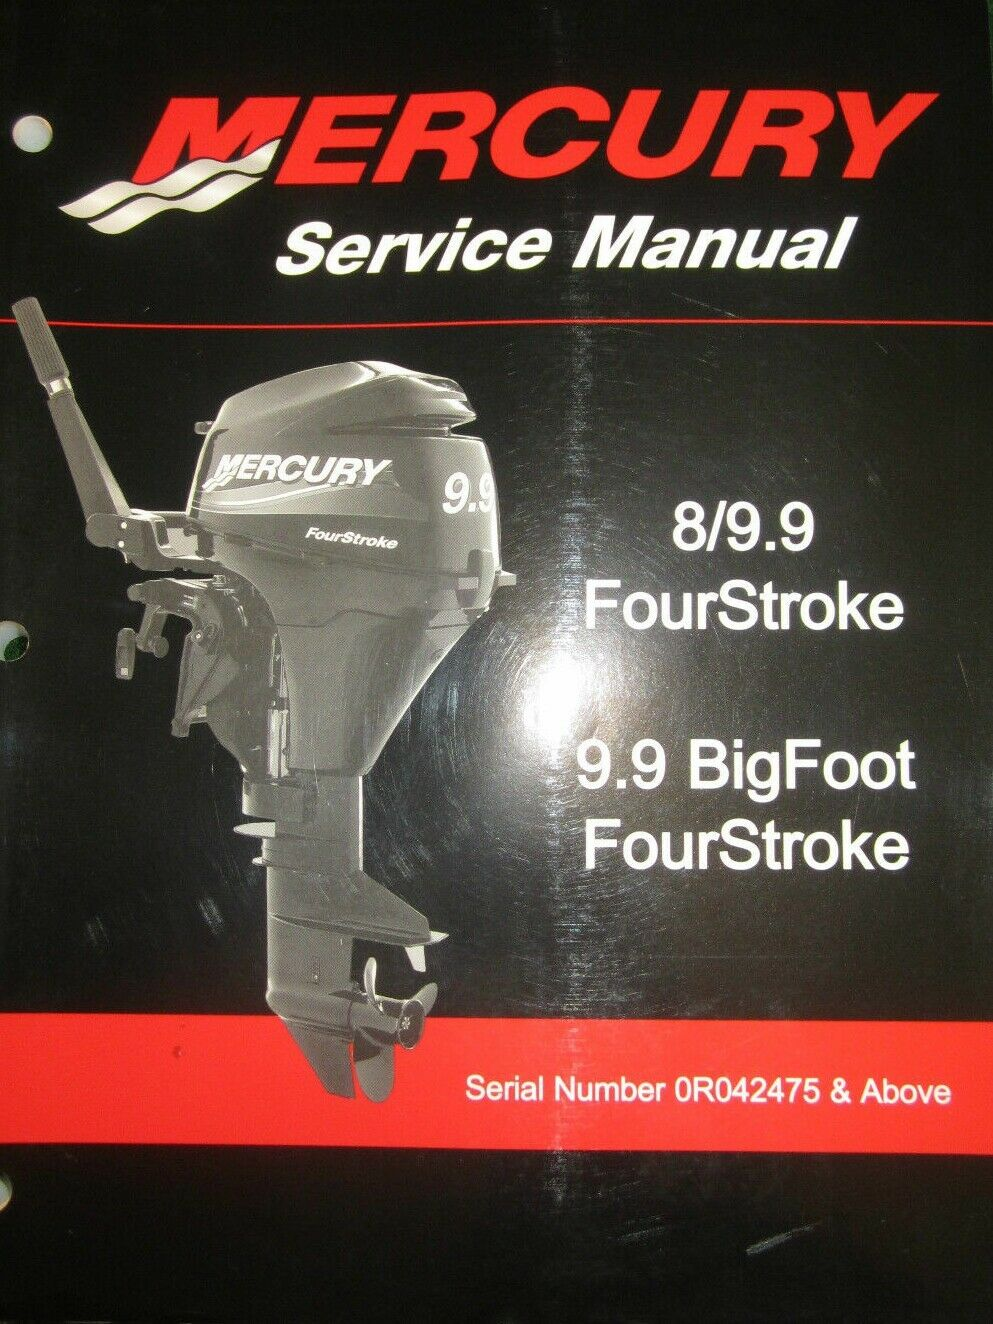 Mercury / Mariner 8 - 9.9 FourStroke Outboard Motor Service Repair Manual  CD 1 of 3FREE Shipping Mercury ...